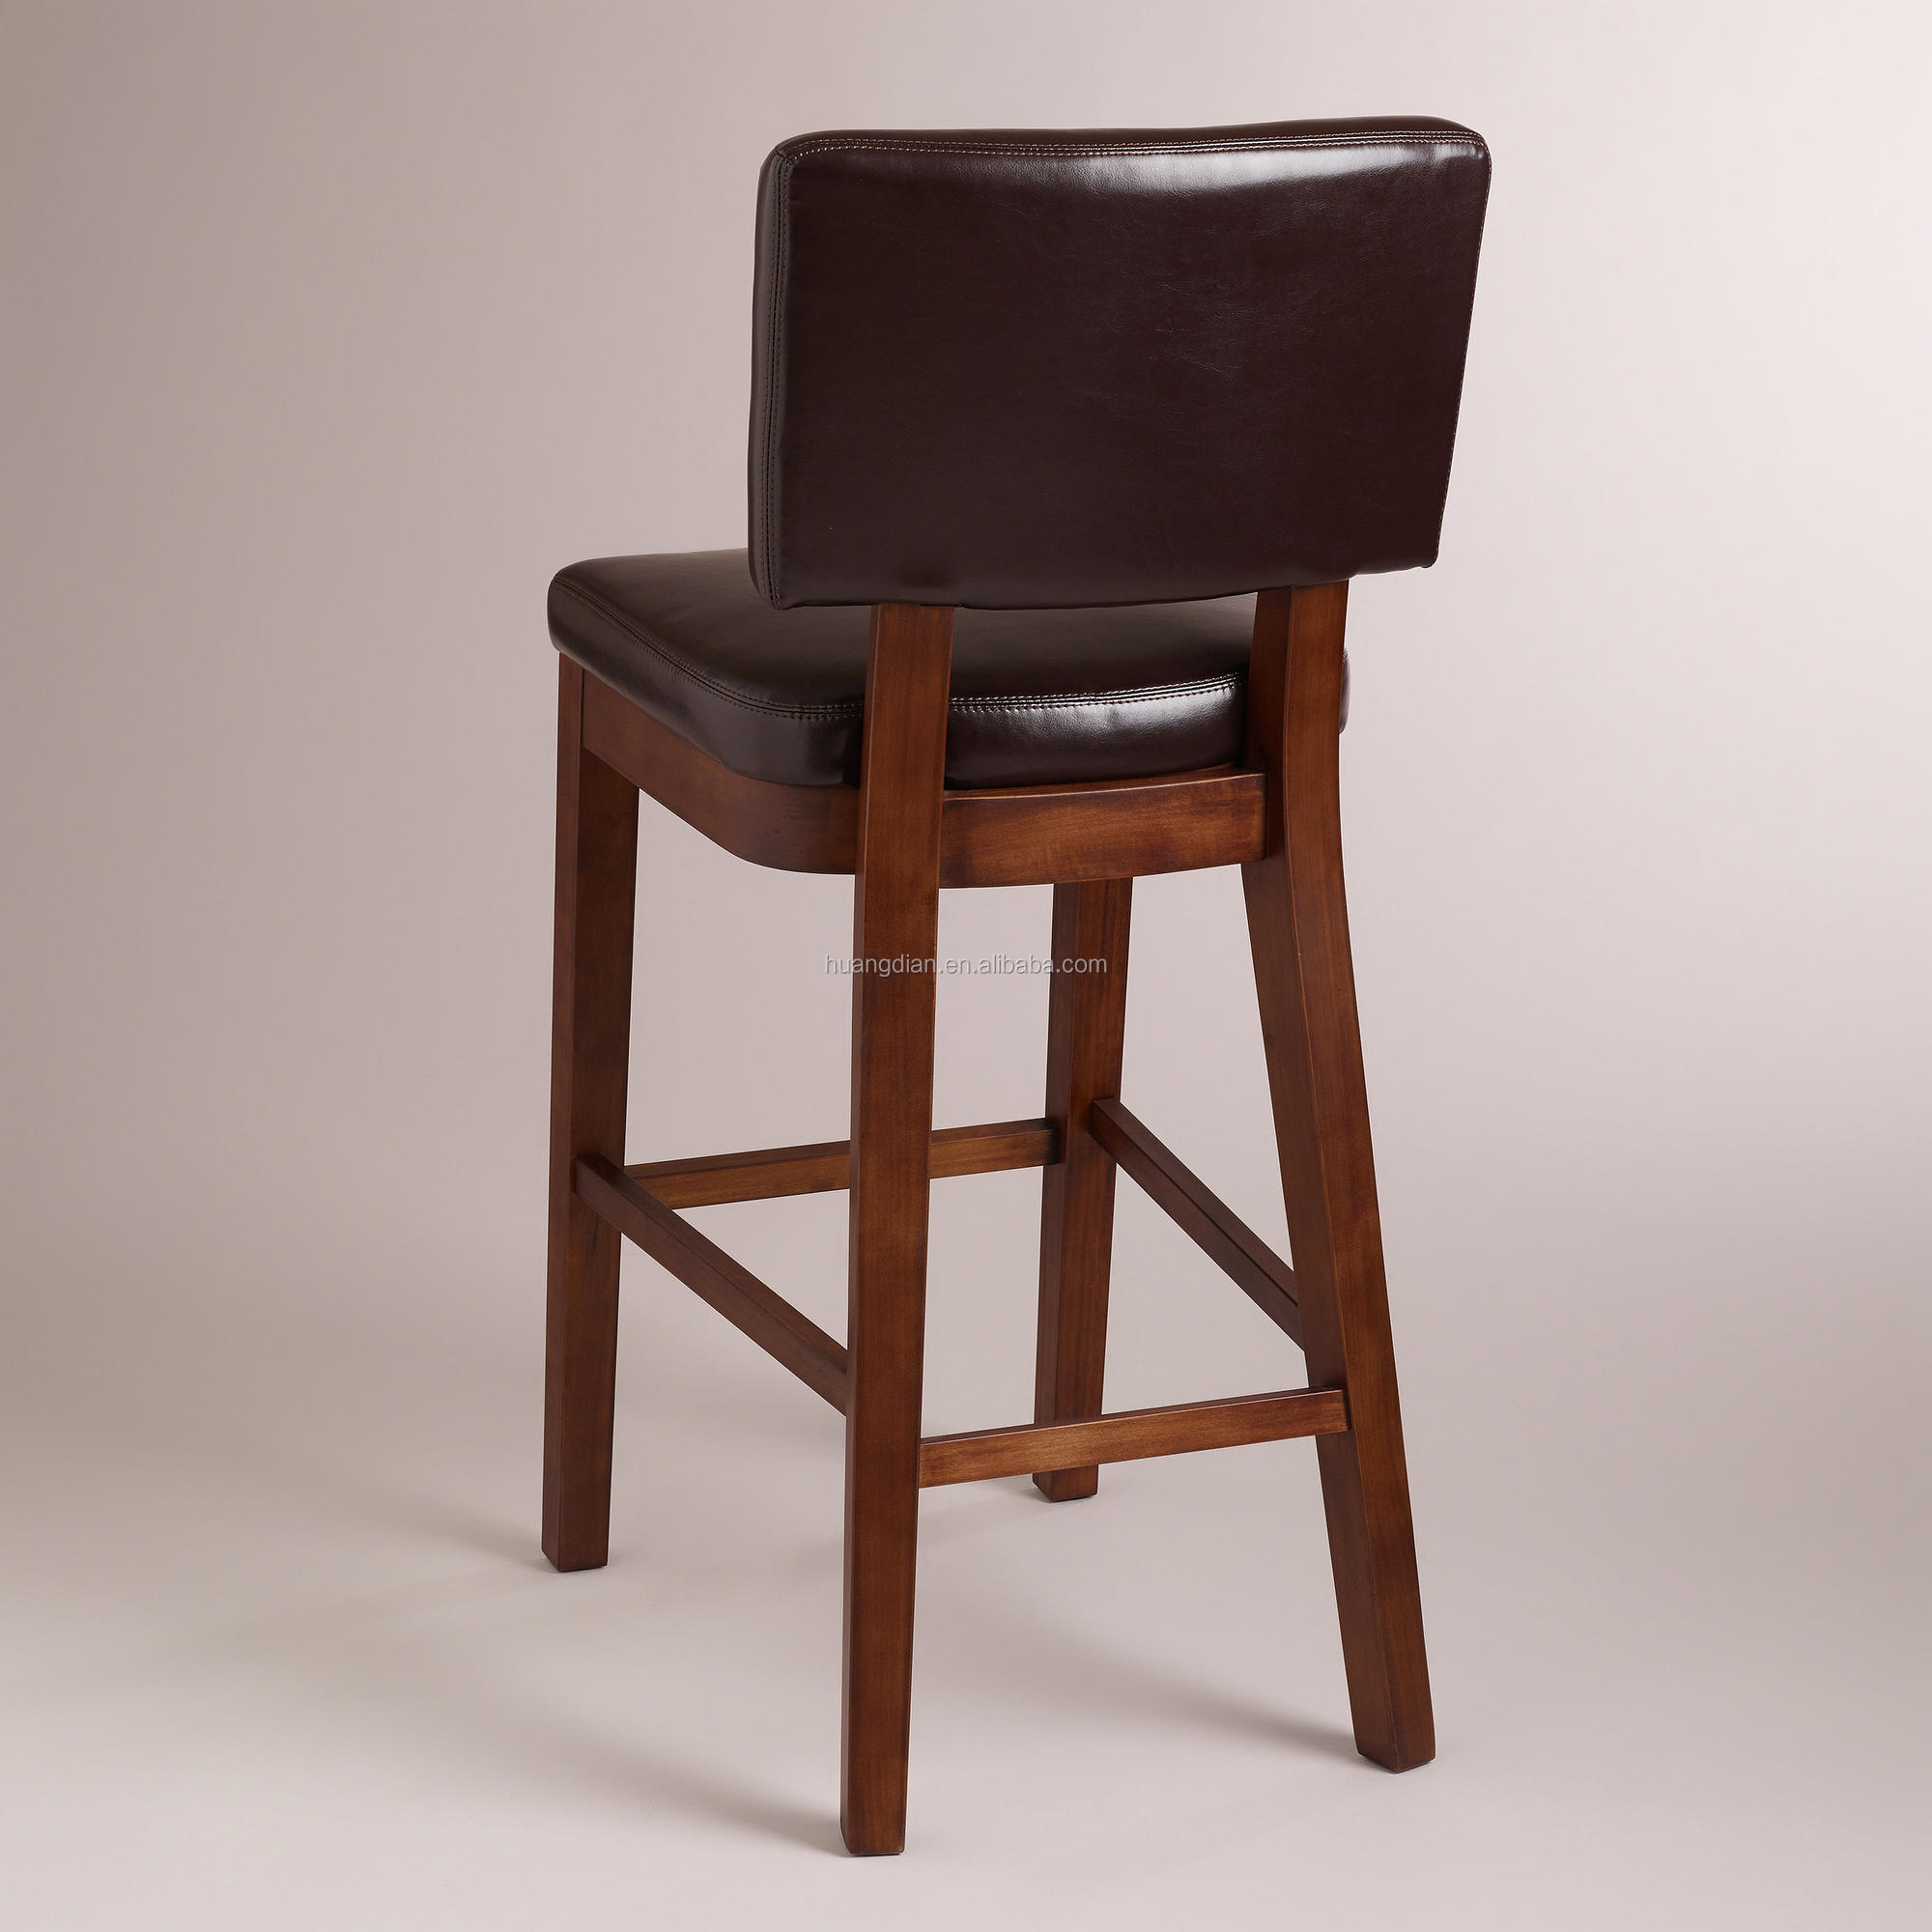 Black Pu Seat Used Nightclub Bars Adult High Chair For Sale Buy